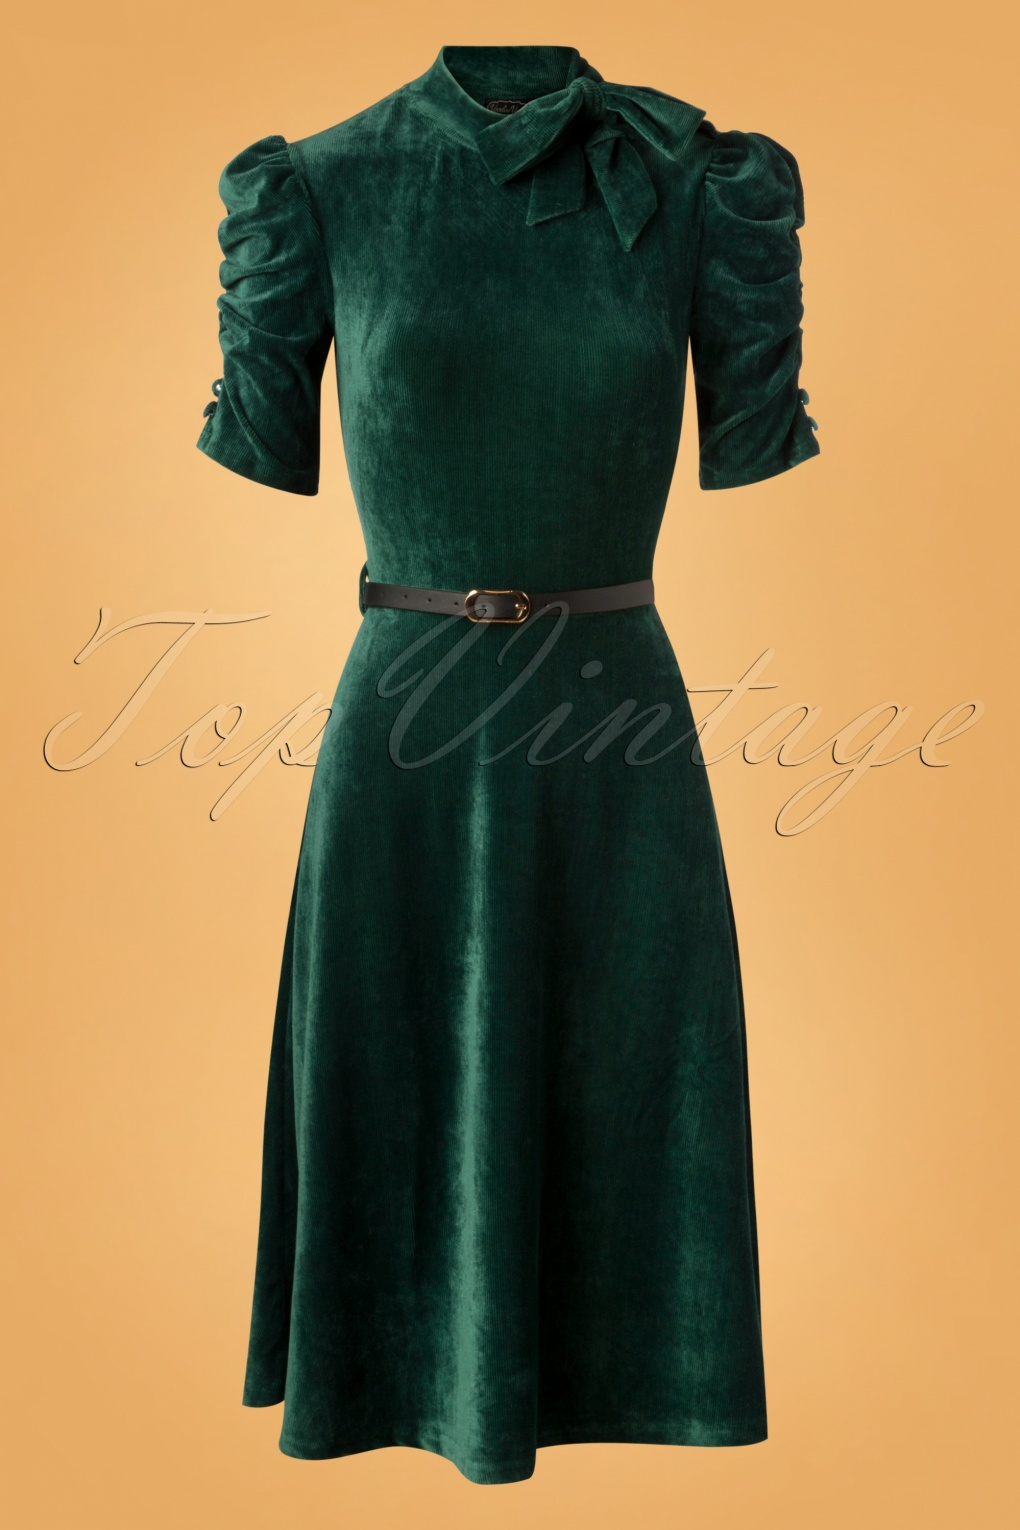 Vintage Christmas Gift Ideas for Women 50s Penelope Velvet Swing Dress in Green £45.21 AT vintagedancer.com